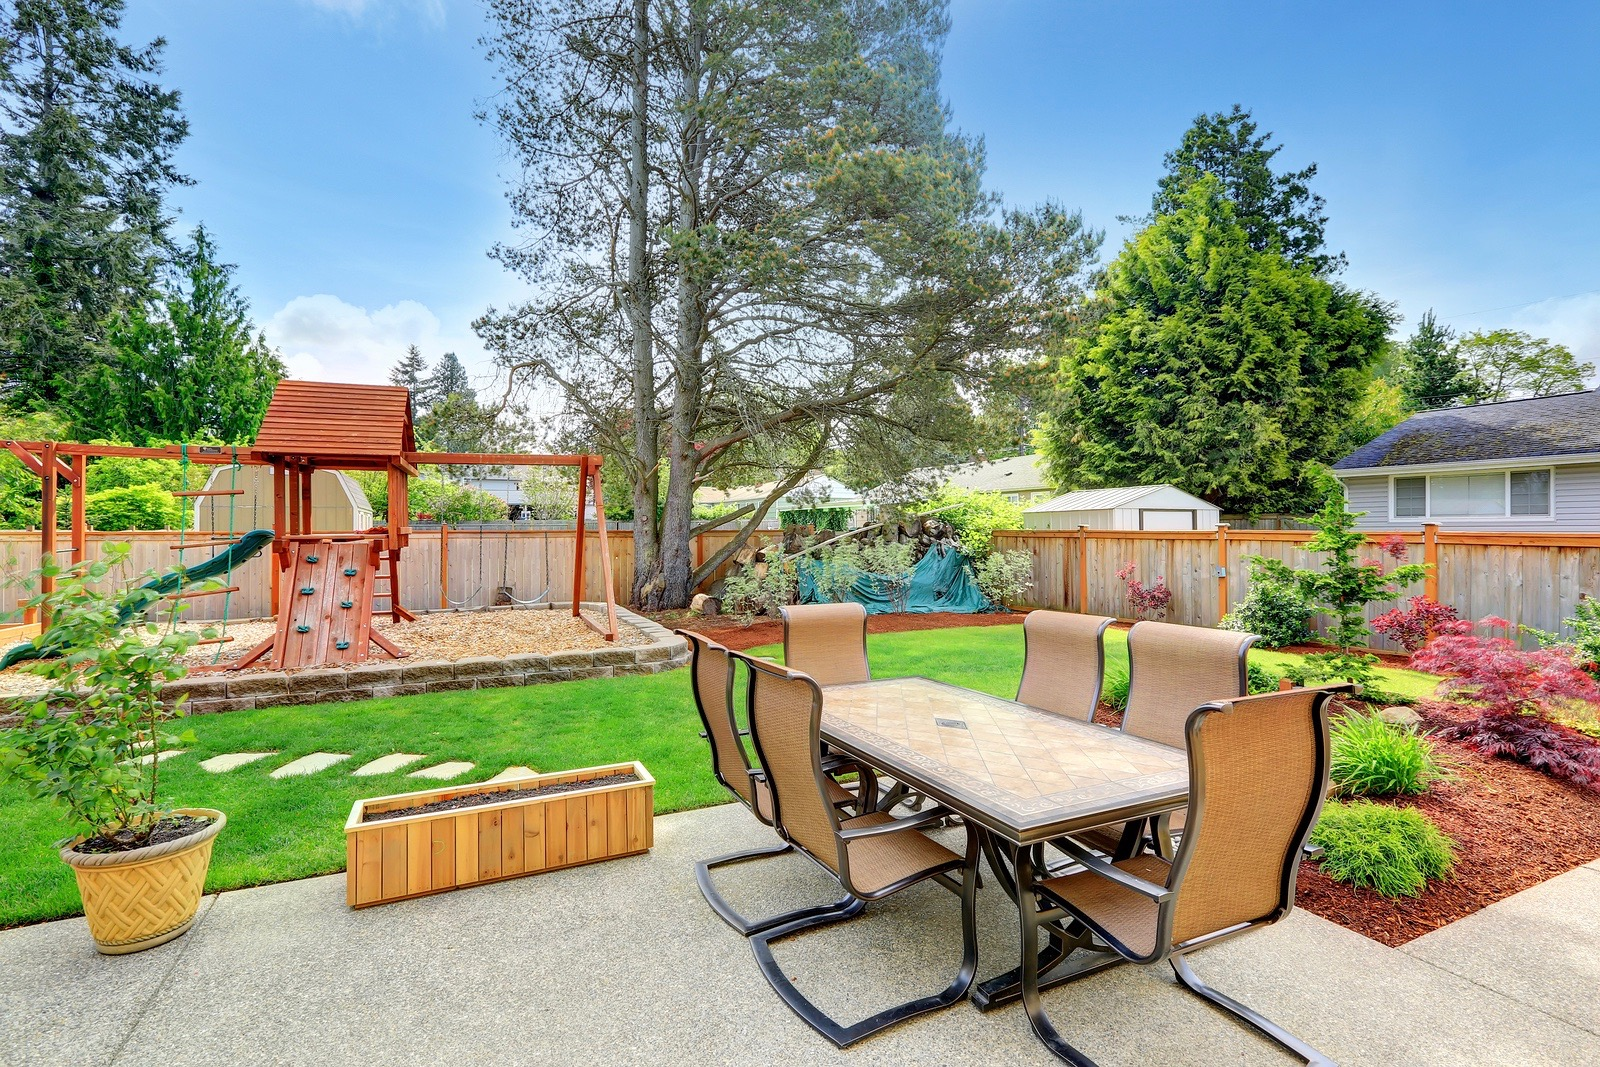 Backyard Playgrounds: To Build or Not to Build ...